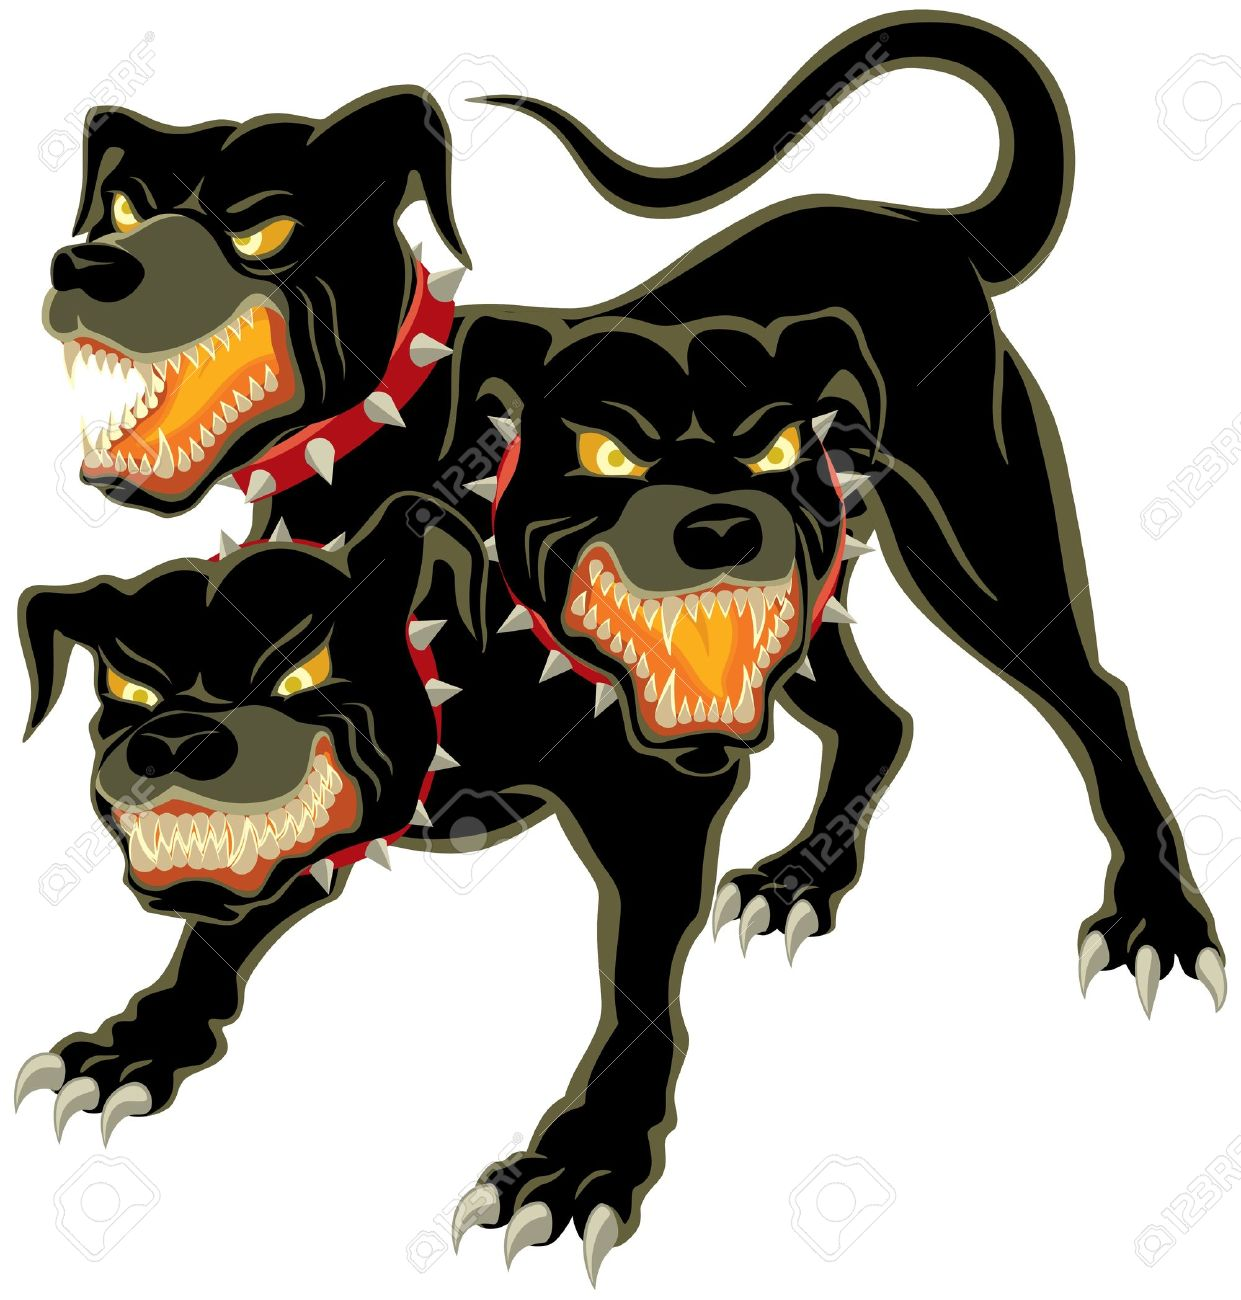 The three headed dog - Cerberus  No transparency and gradients used Stock Vector - 12496640